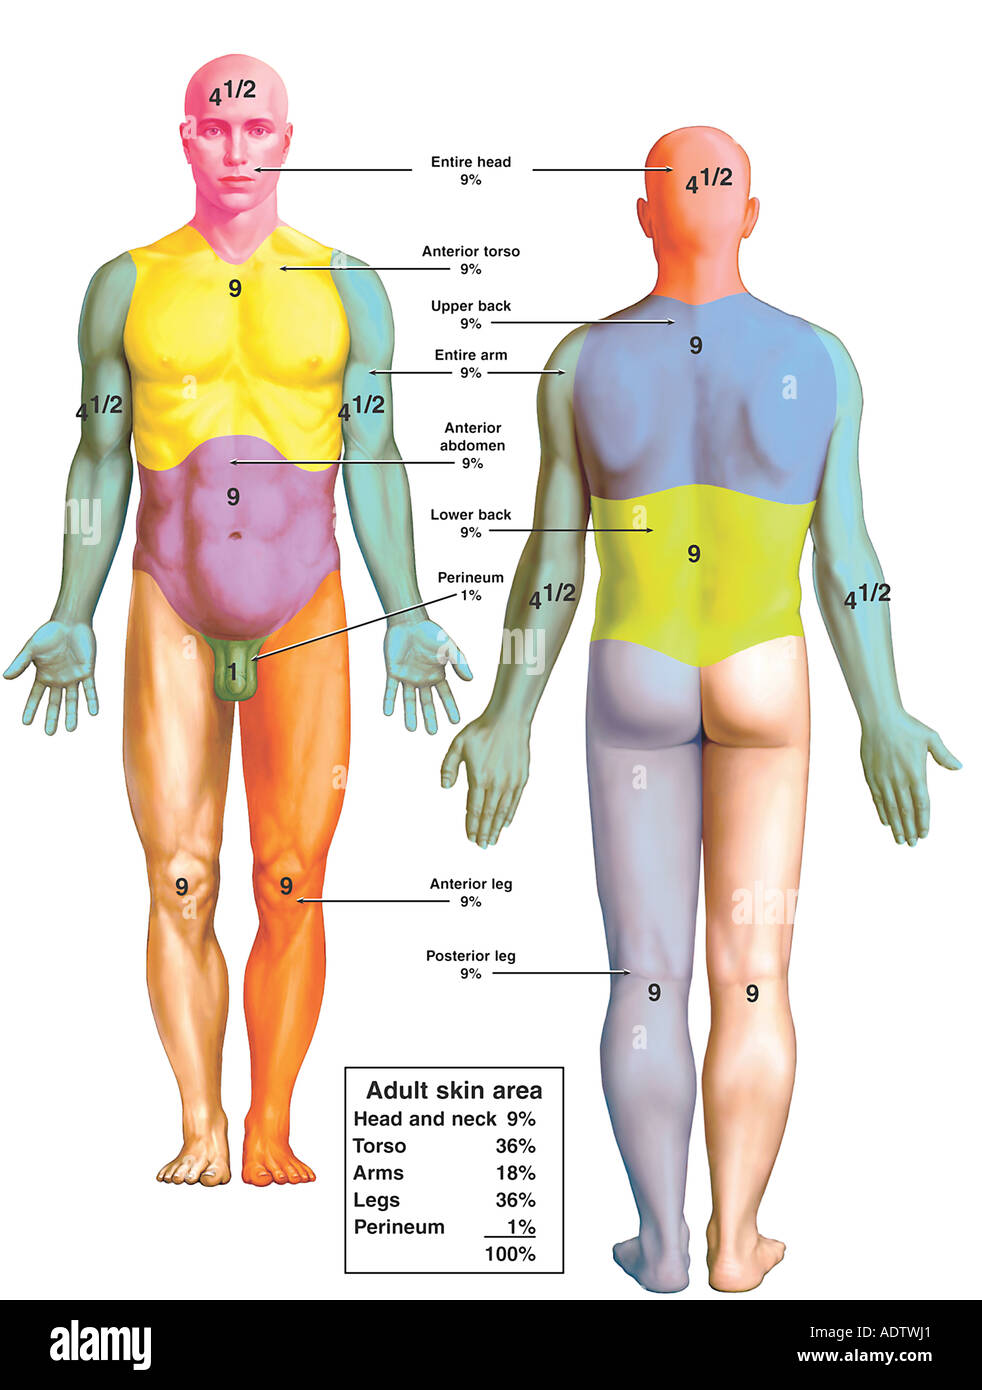 Rule of Nines for Body Areas - Stock Image